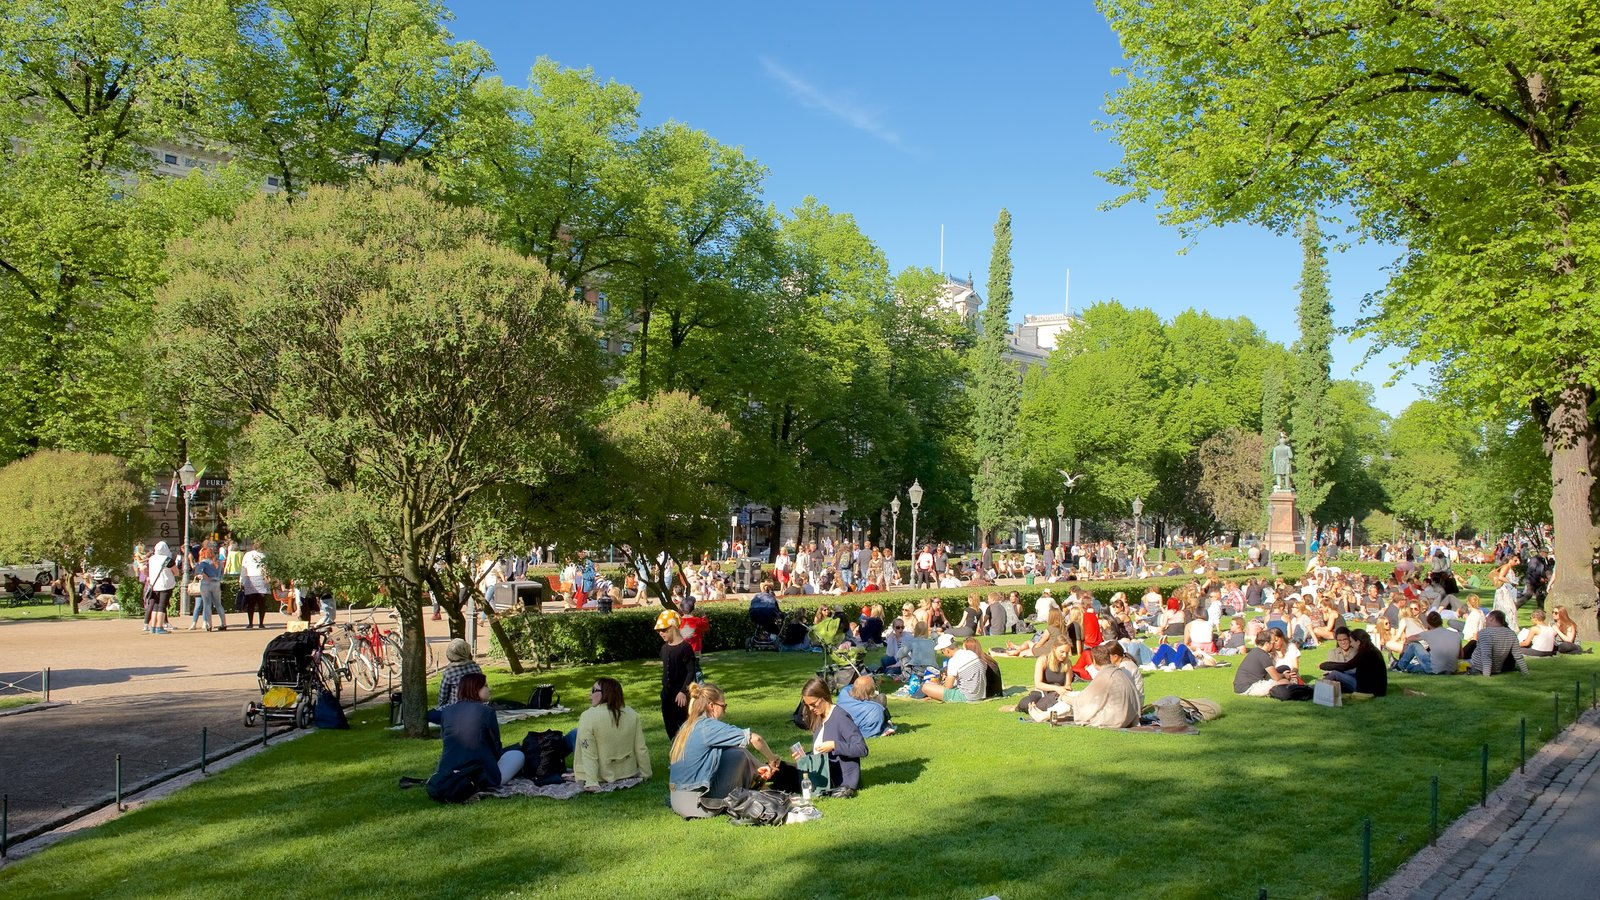 Esplanadi showing a park and picnicing as well as a large group of people